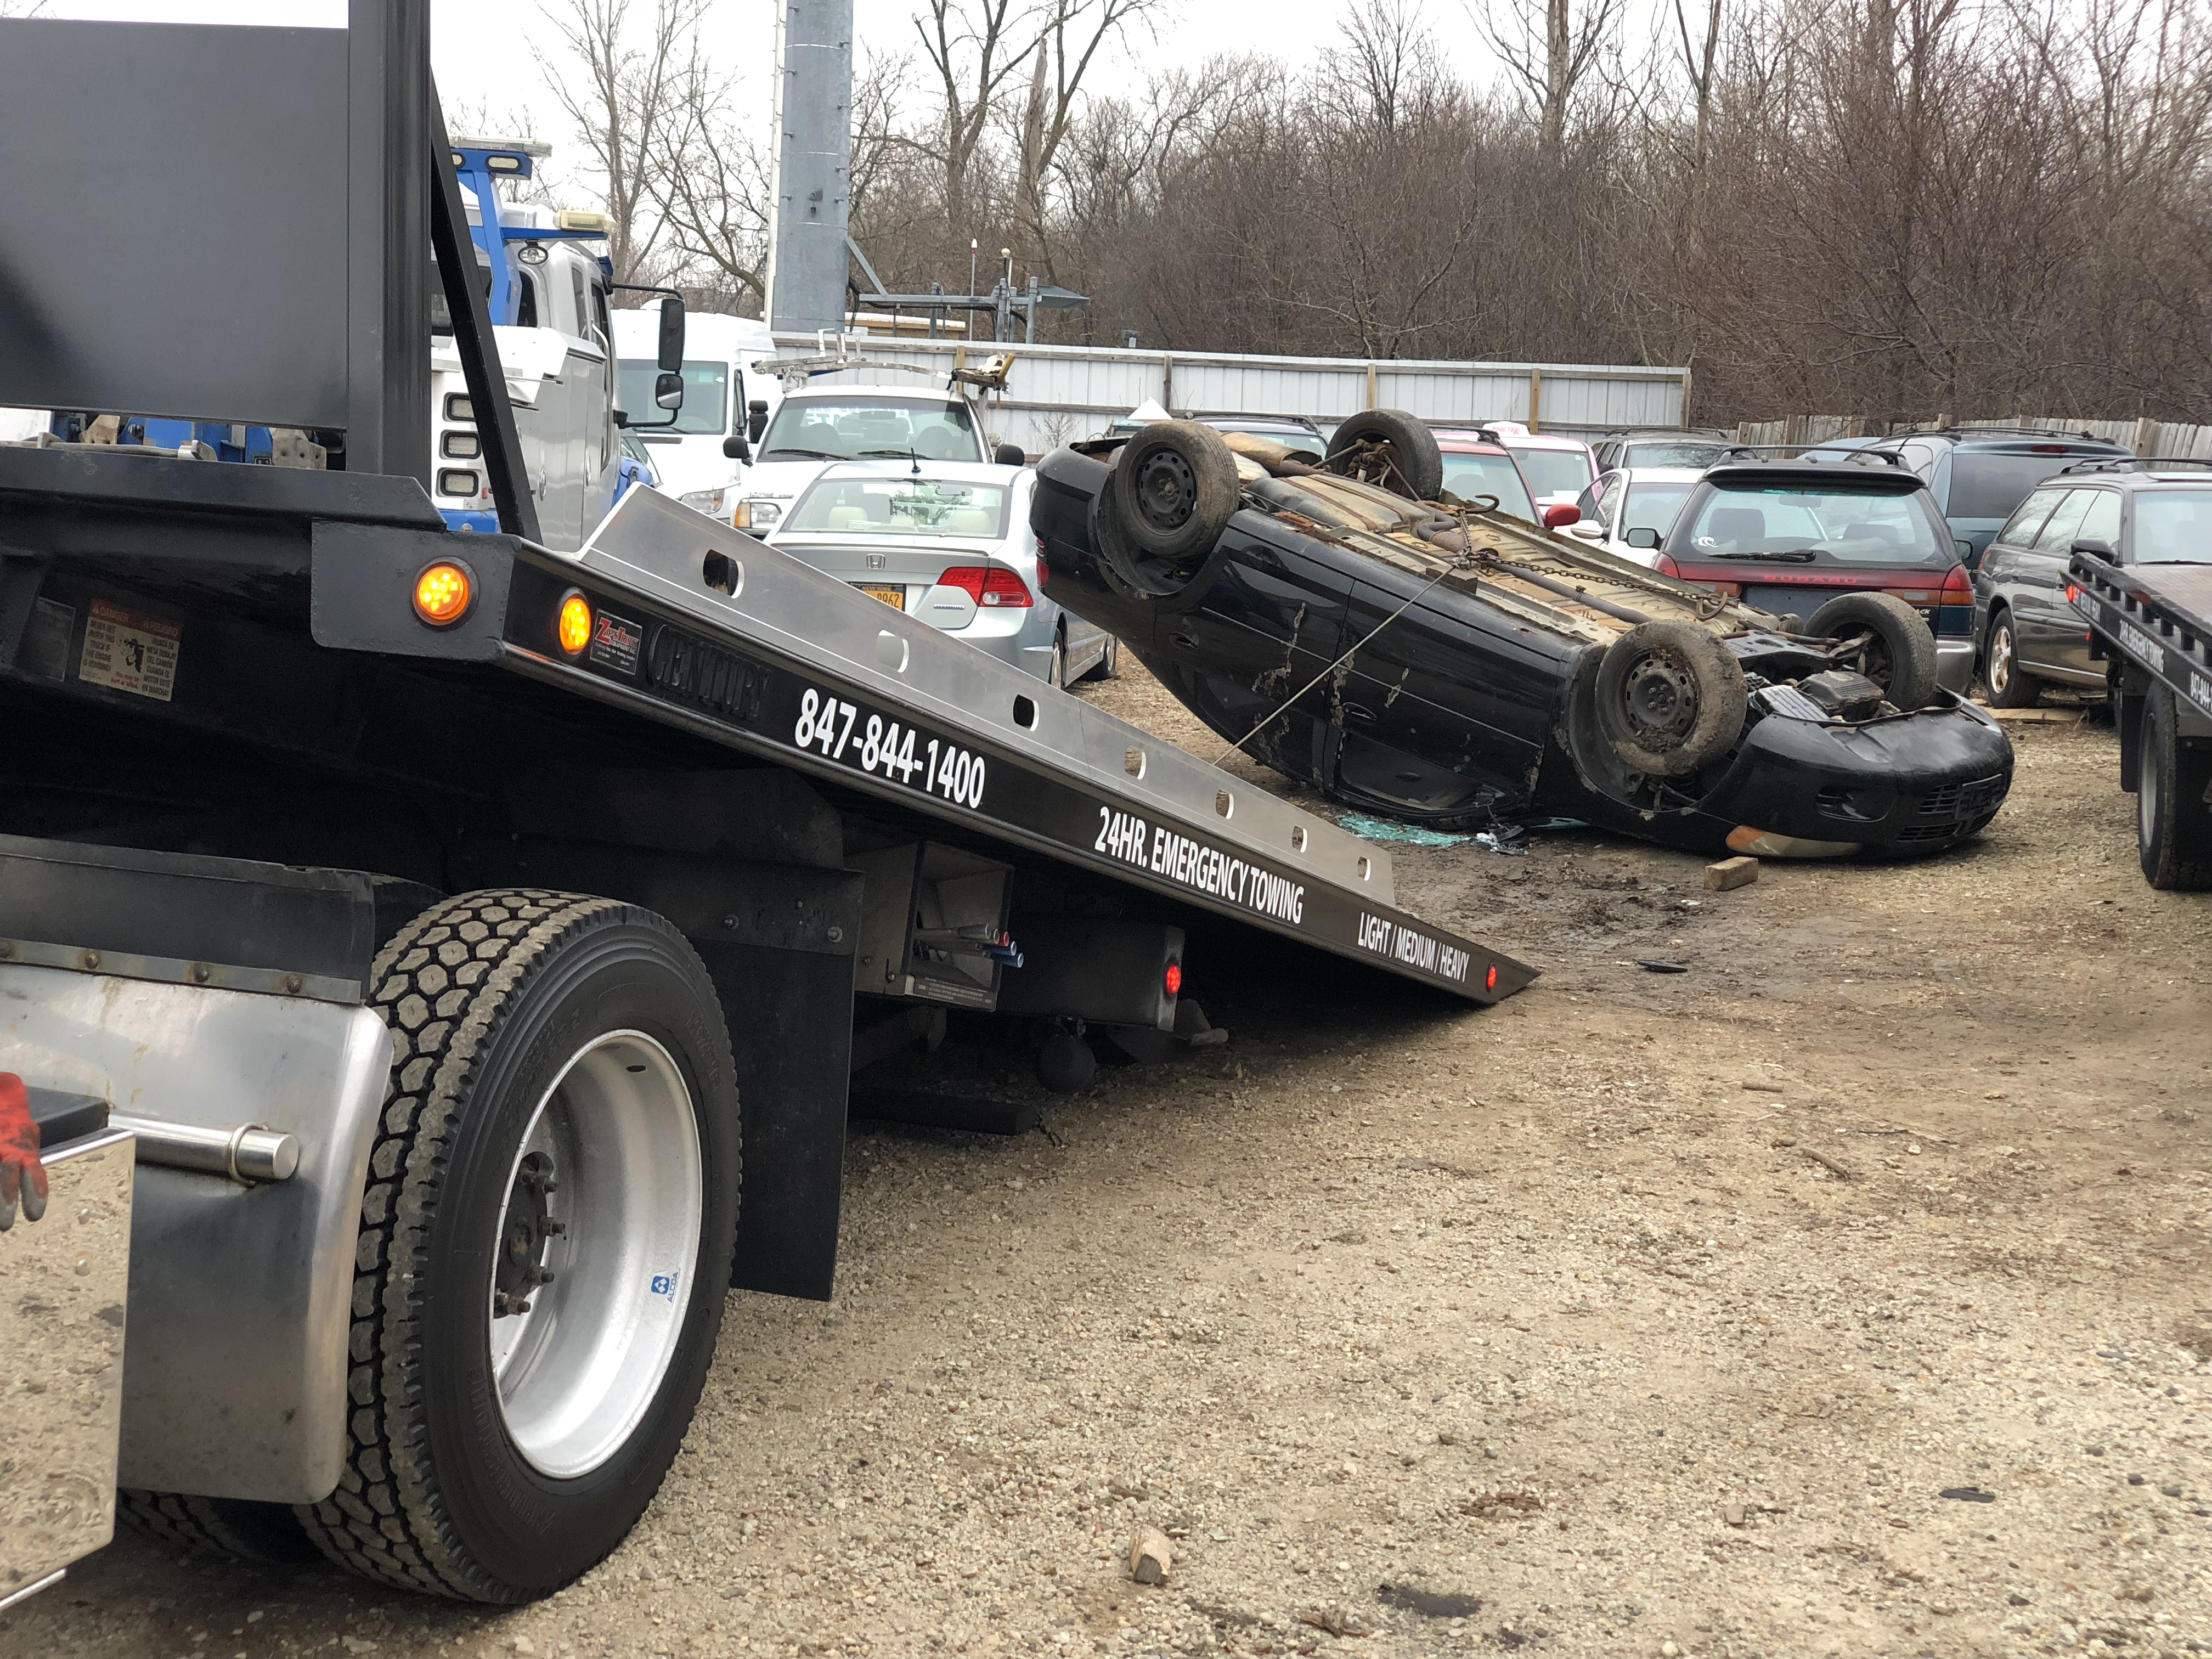 Cash for Junk Cars - Speedy G Towing